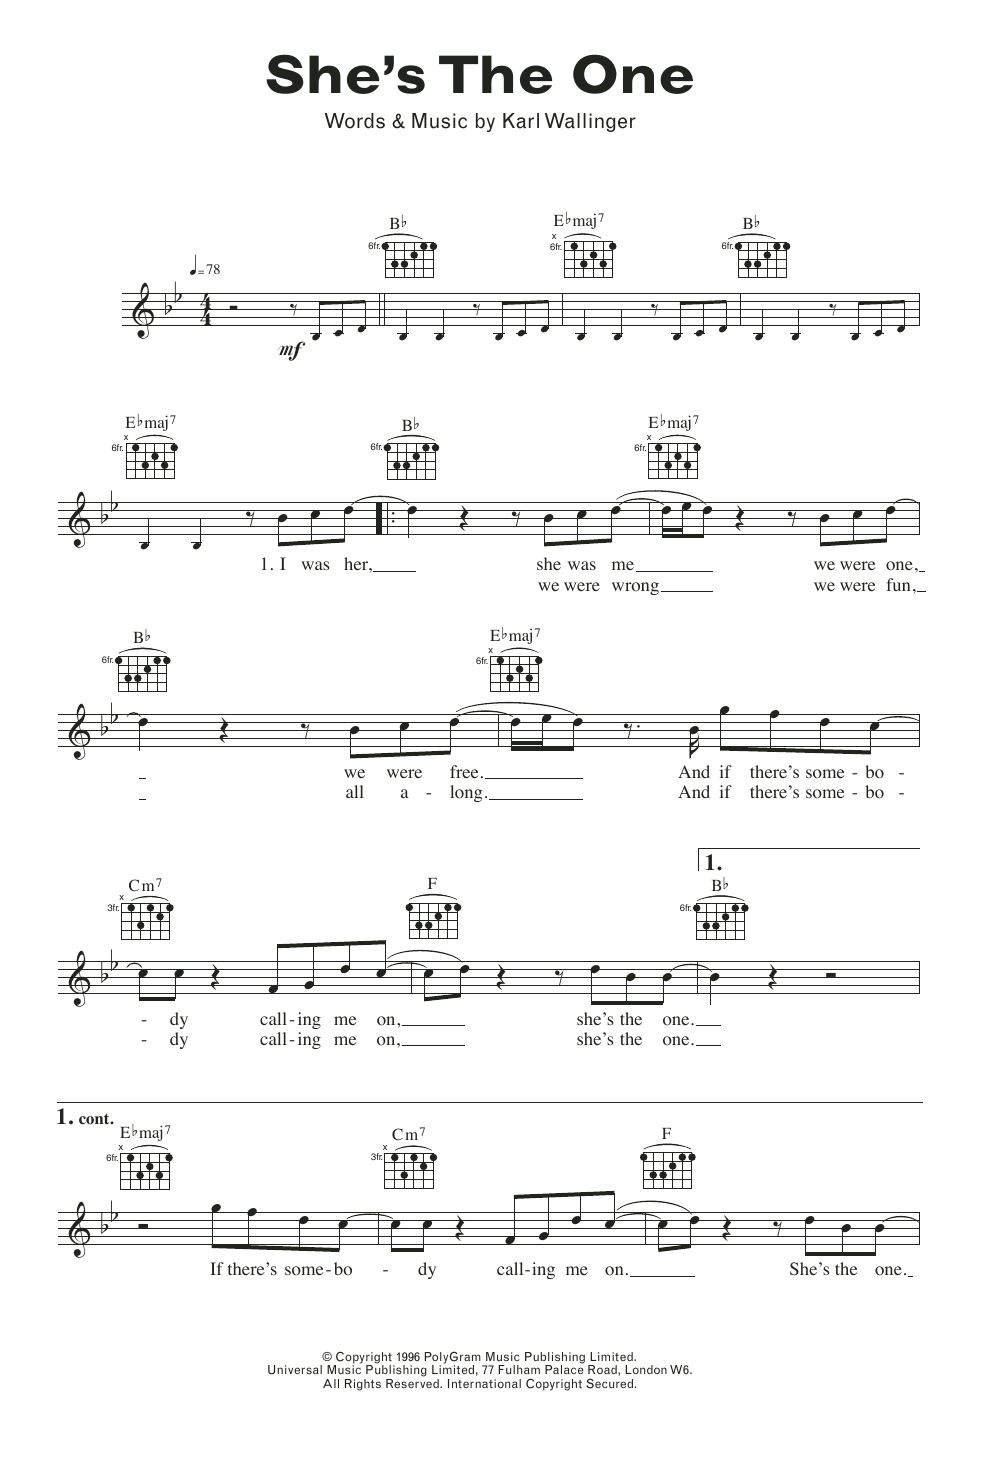 She's The One Sheet Music